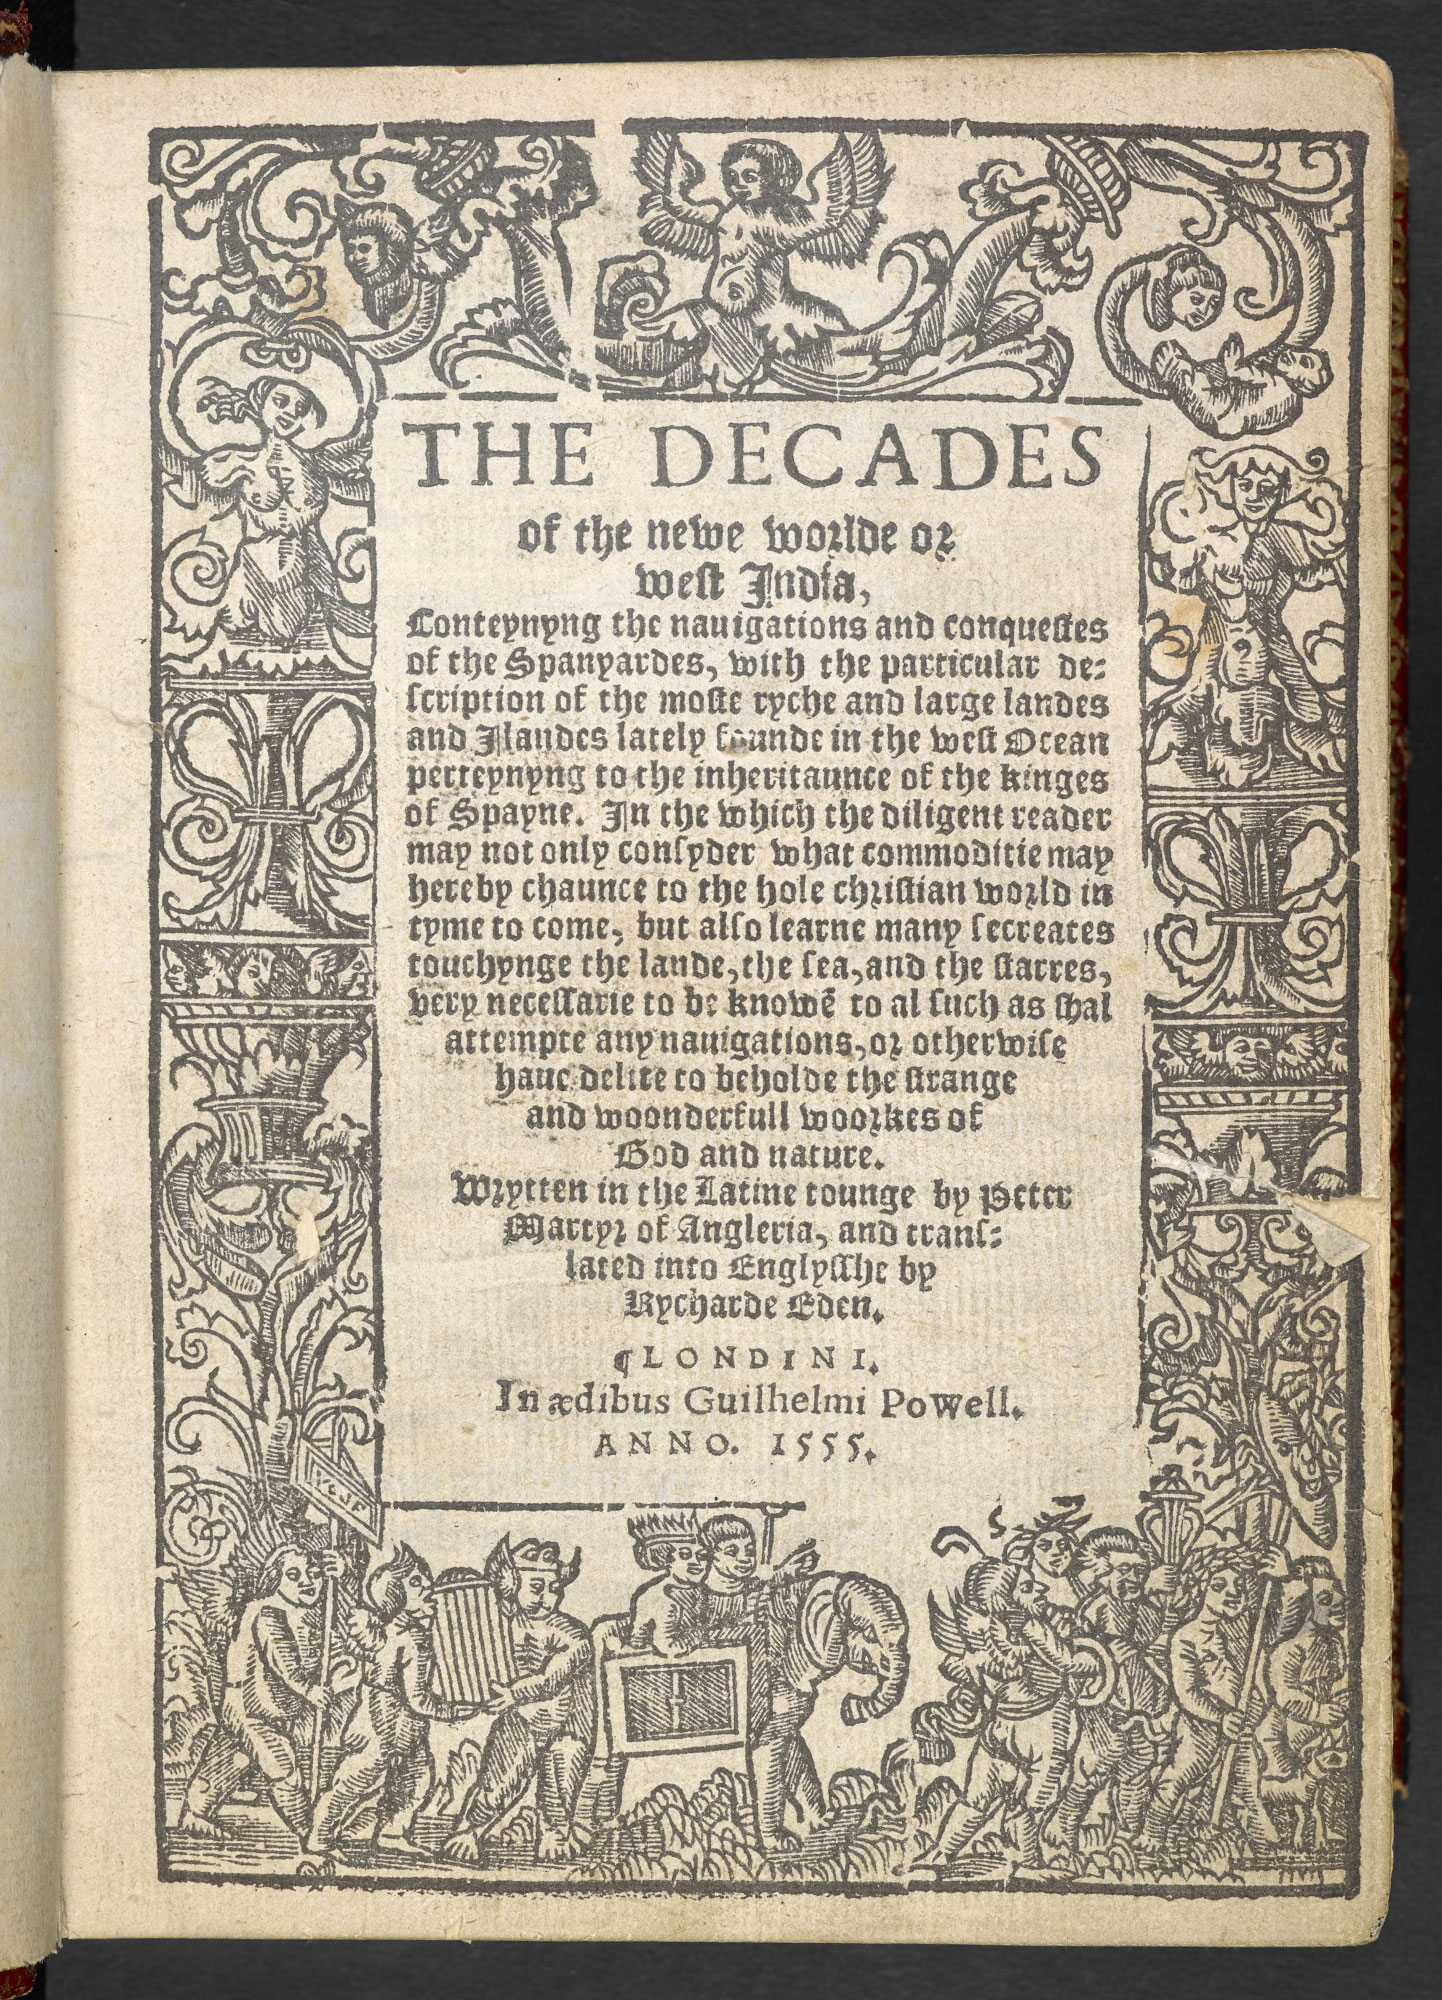 edens-decades-of-the-c_13_a_8_title_page